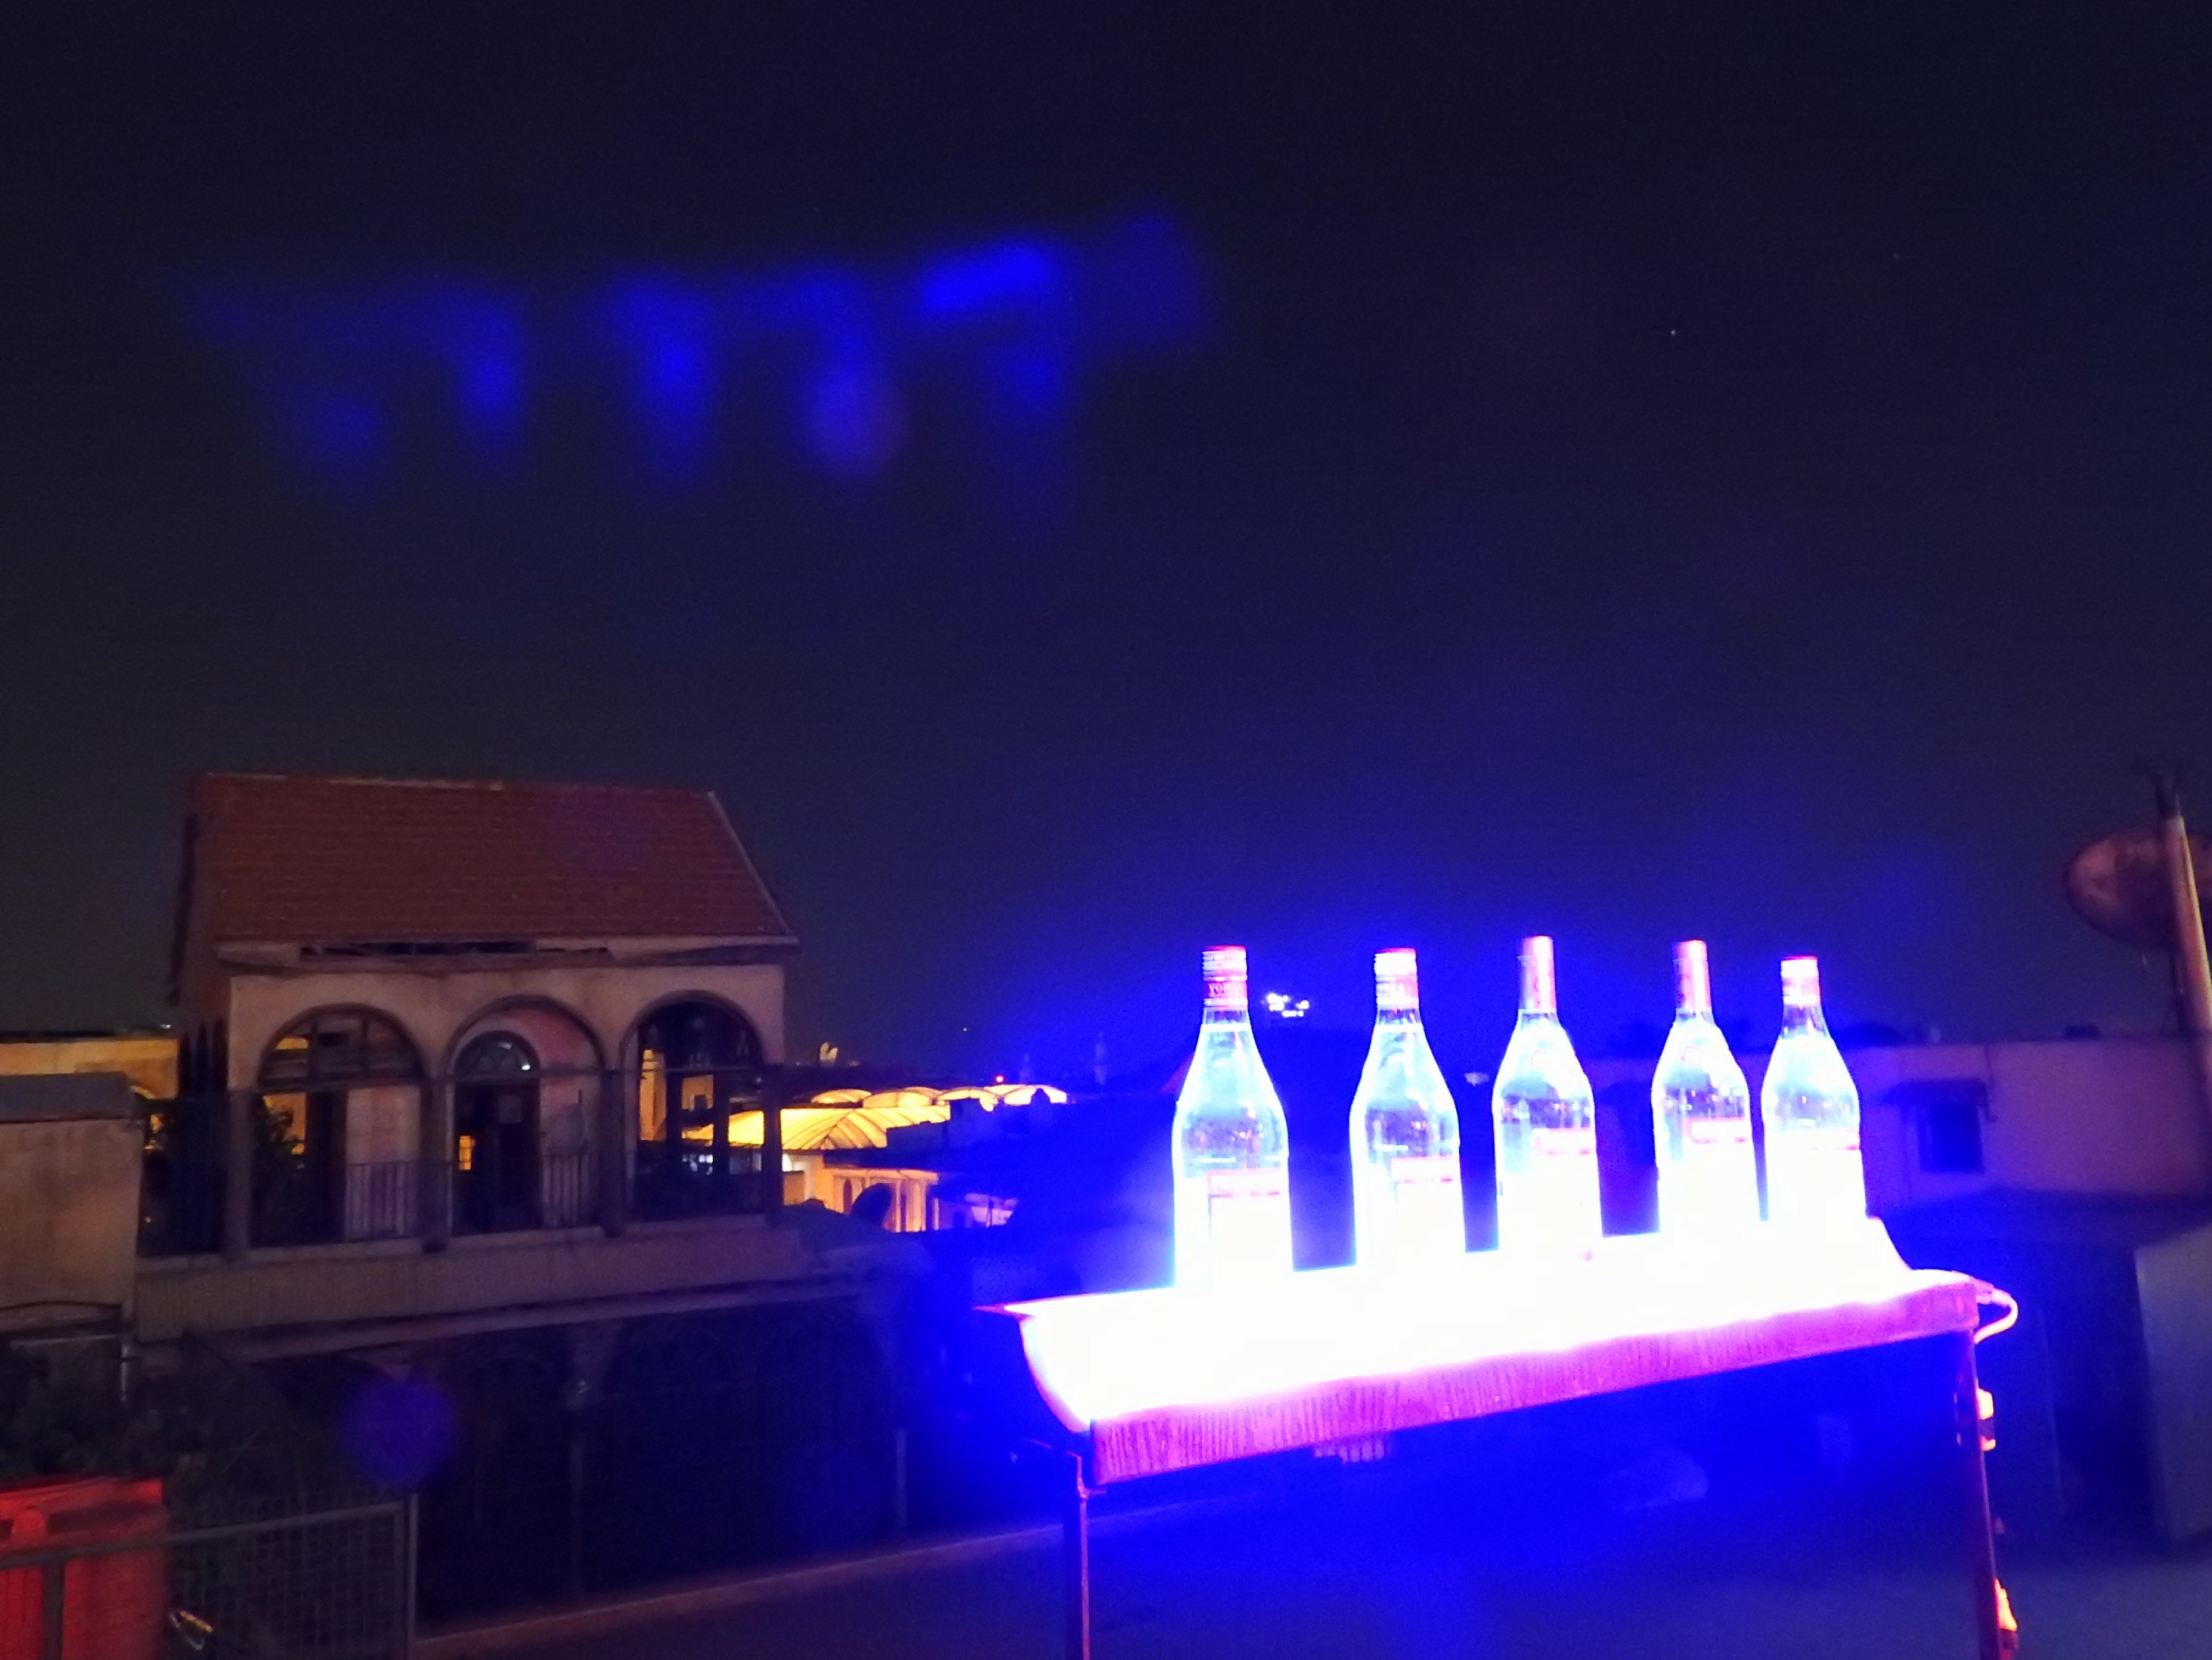 "Le Visage, also in the East Gate quarter, was among the first outdoor establishment to open after the mortars stopped some months ago. From its rooftop position, one can look down on the historic Straight Street leading up to East Gate, as well as see life on balconies opposite, where months prior they were empty. A display of lighted alcohol bottles gleam in the dark, with Jobar less than 1 km beyond. A Damascus youth noted: ""Imagine, ISIS are about 4 km away and we are opening new bars. This is the Syrian people."""